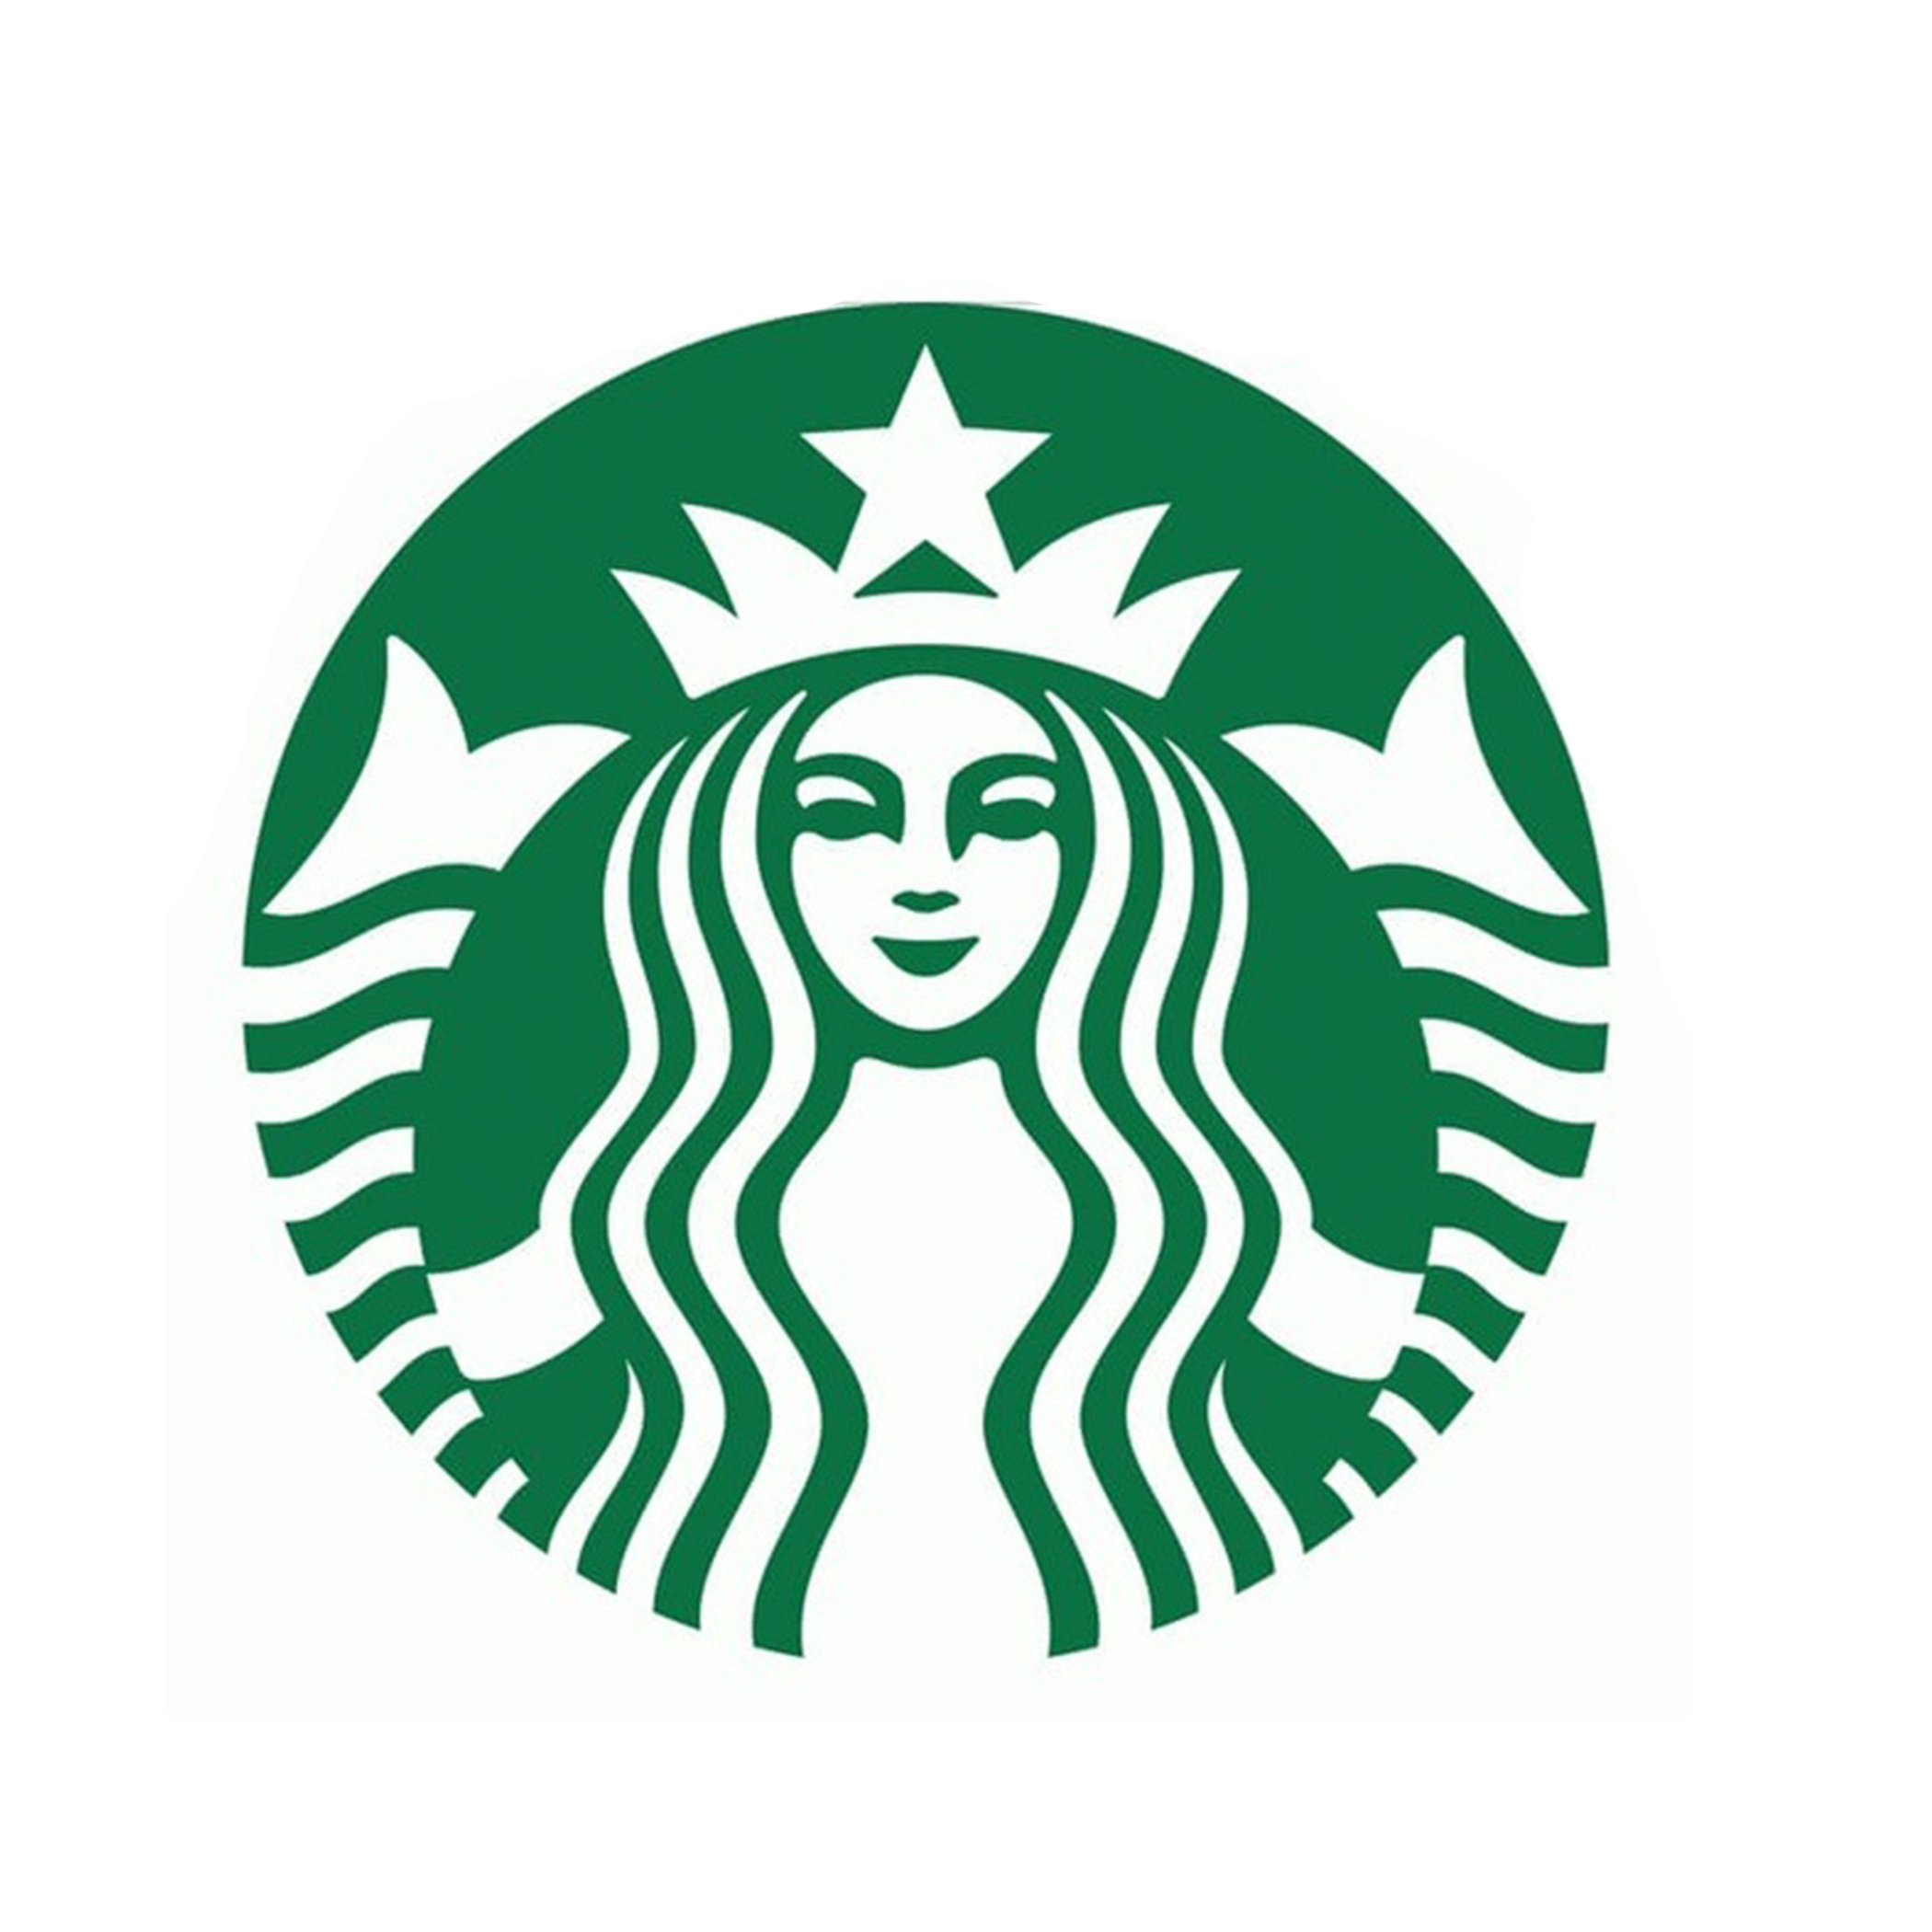 starbucks_featured_image-1.jpg